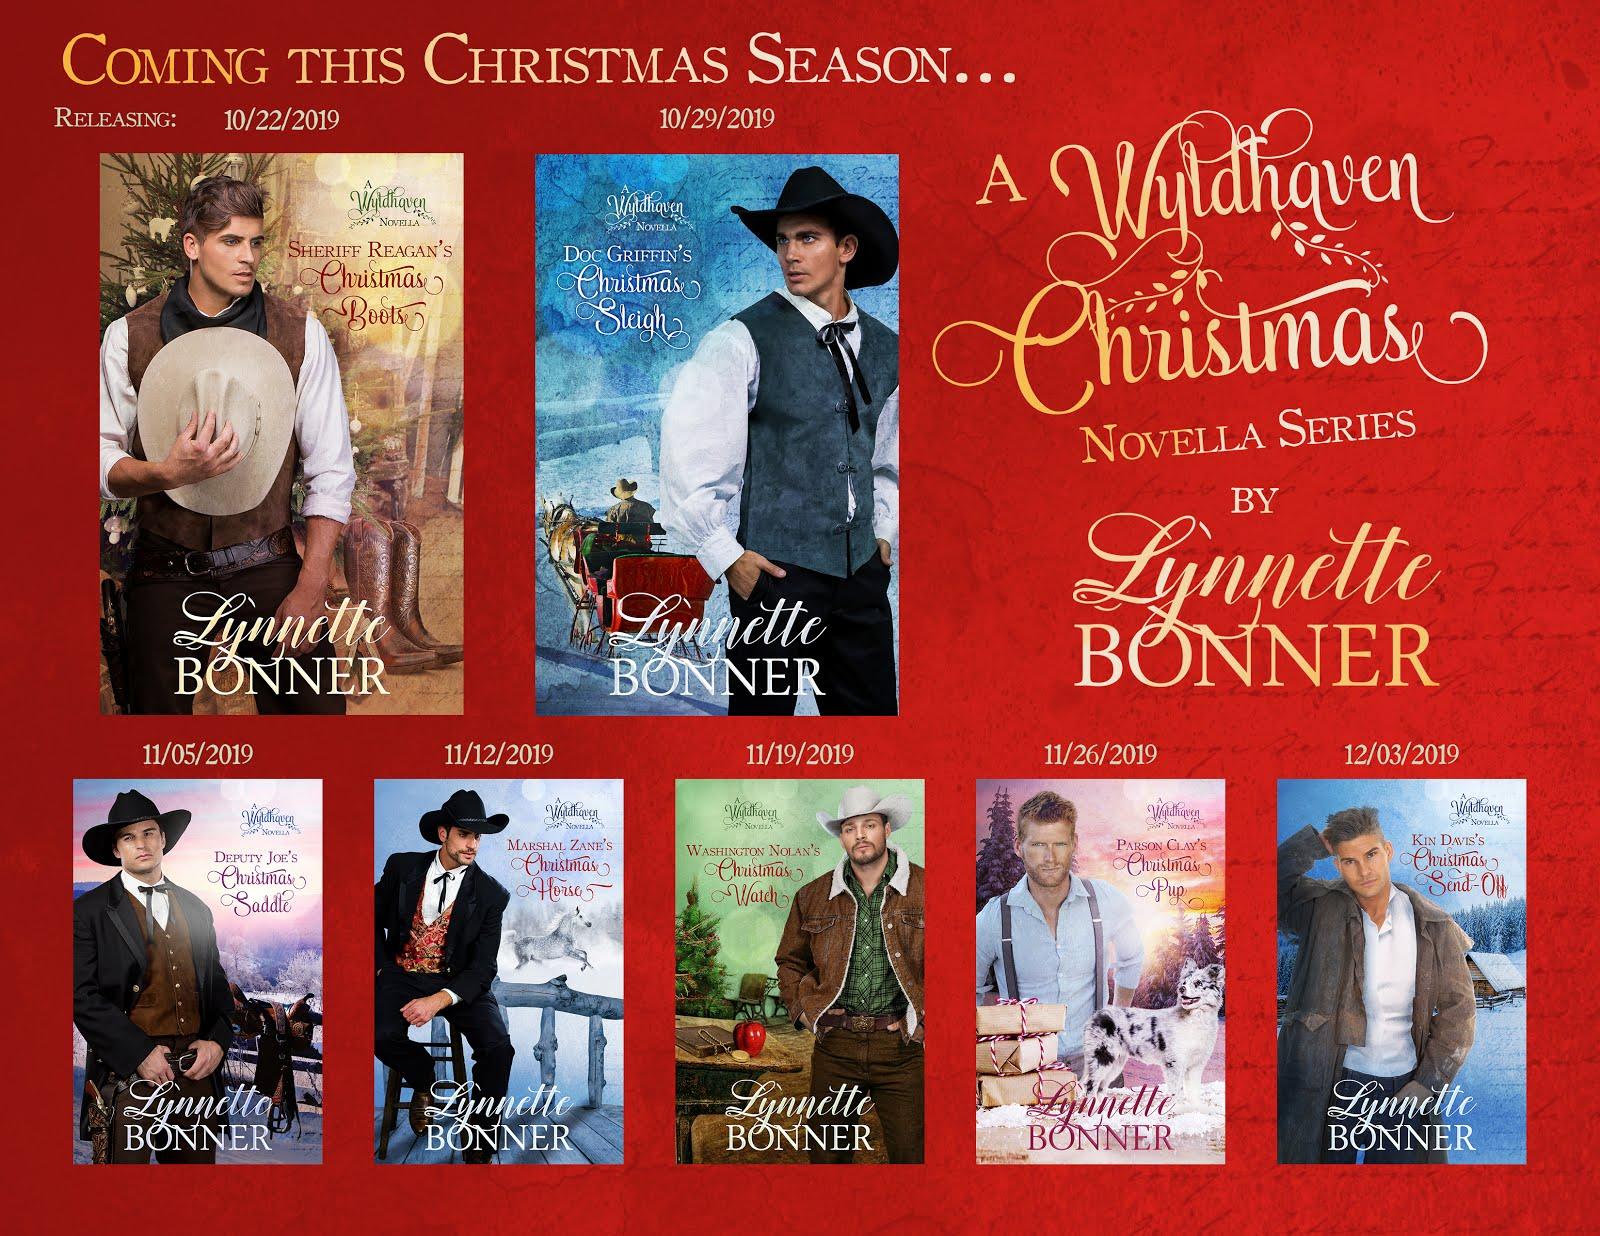 The Windhaven Christmas Novella Series